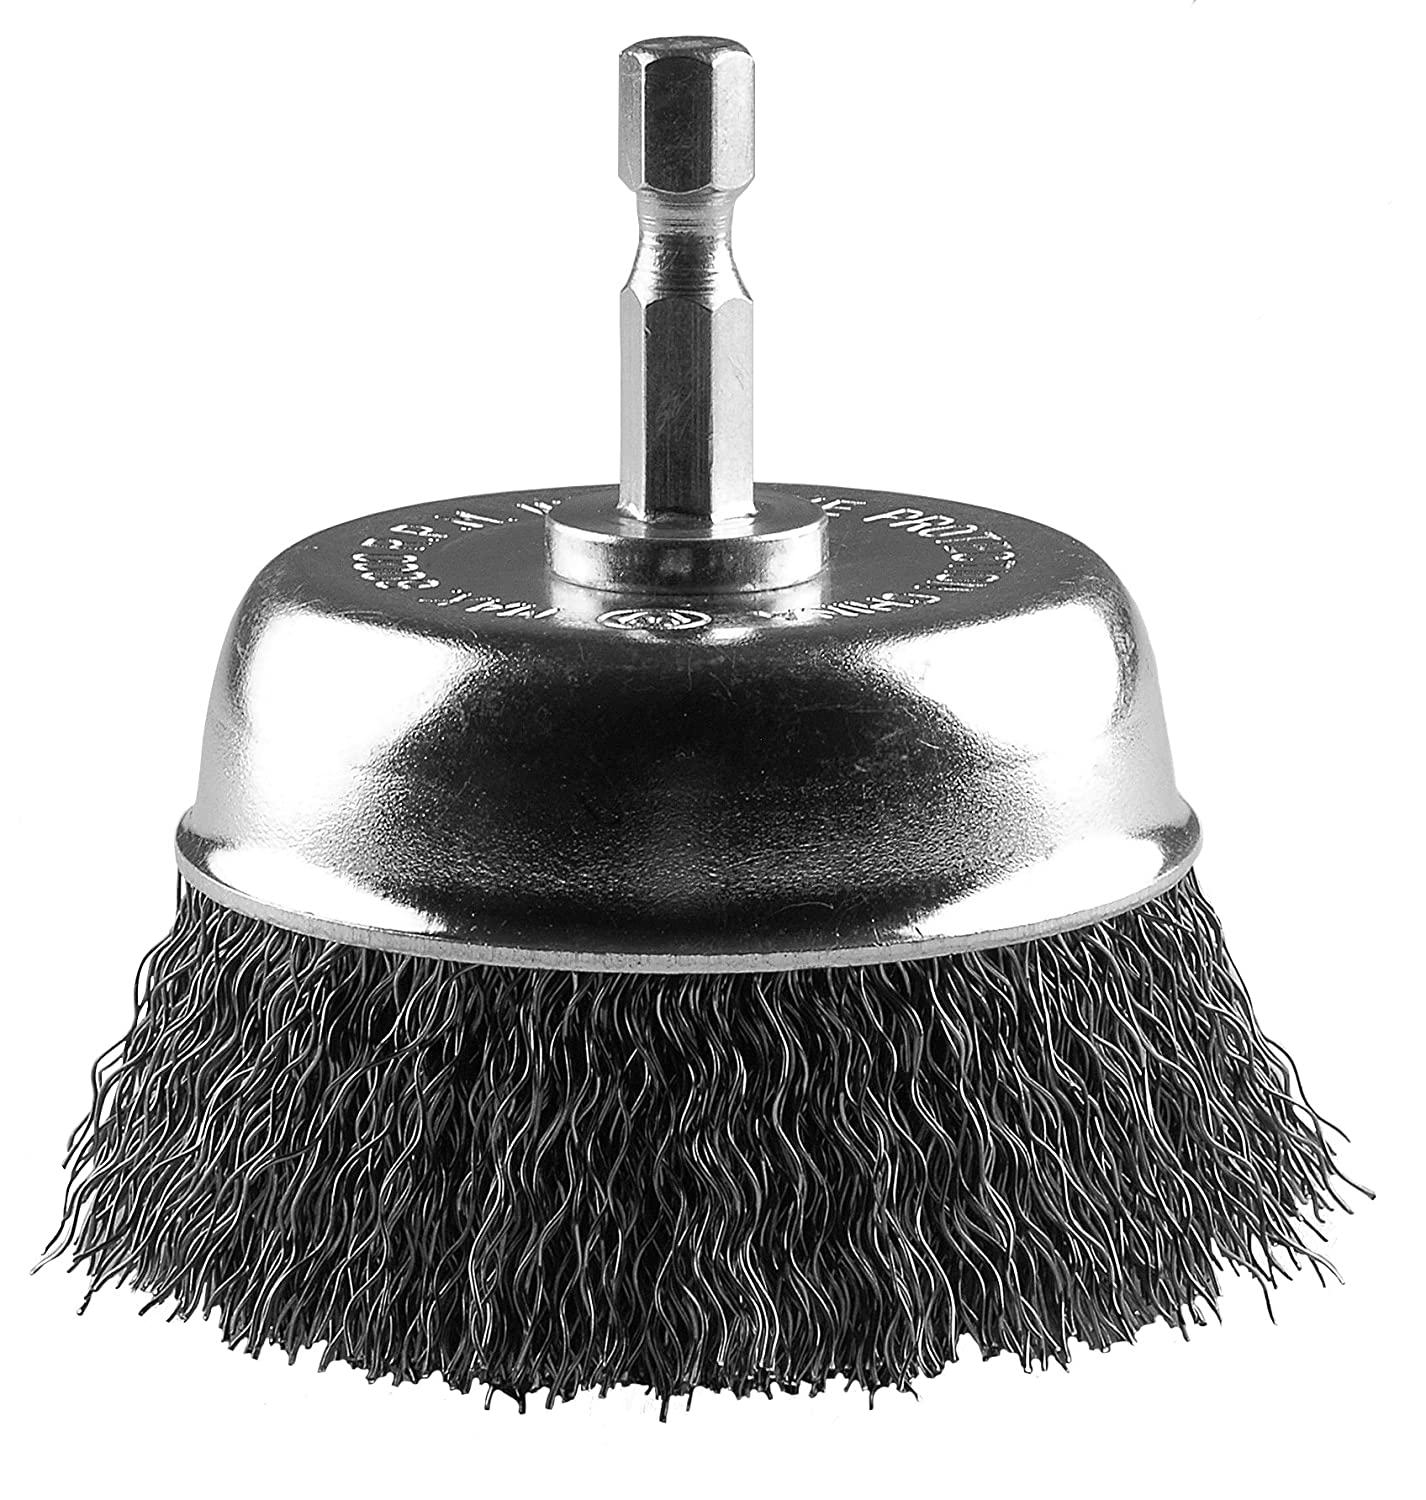 Hot Max 26218 3-inch Mounted Cup Brush, 1/4-Inch Hex Shank, 0.12-inch Wire